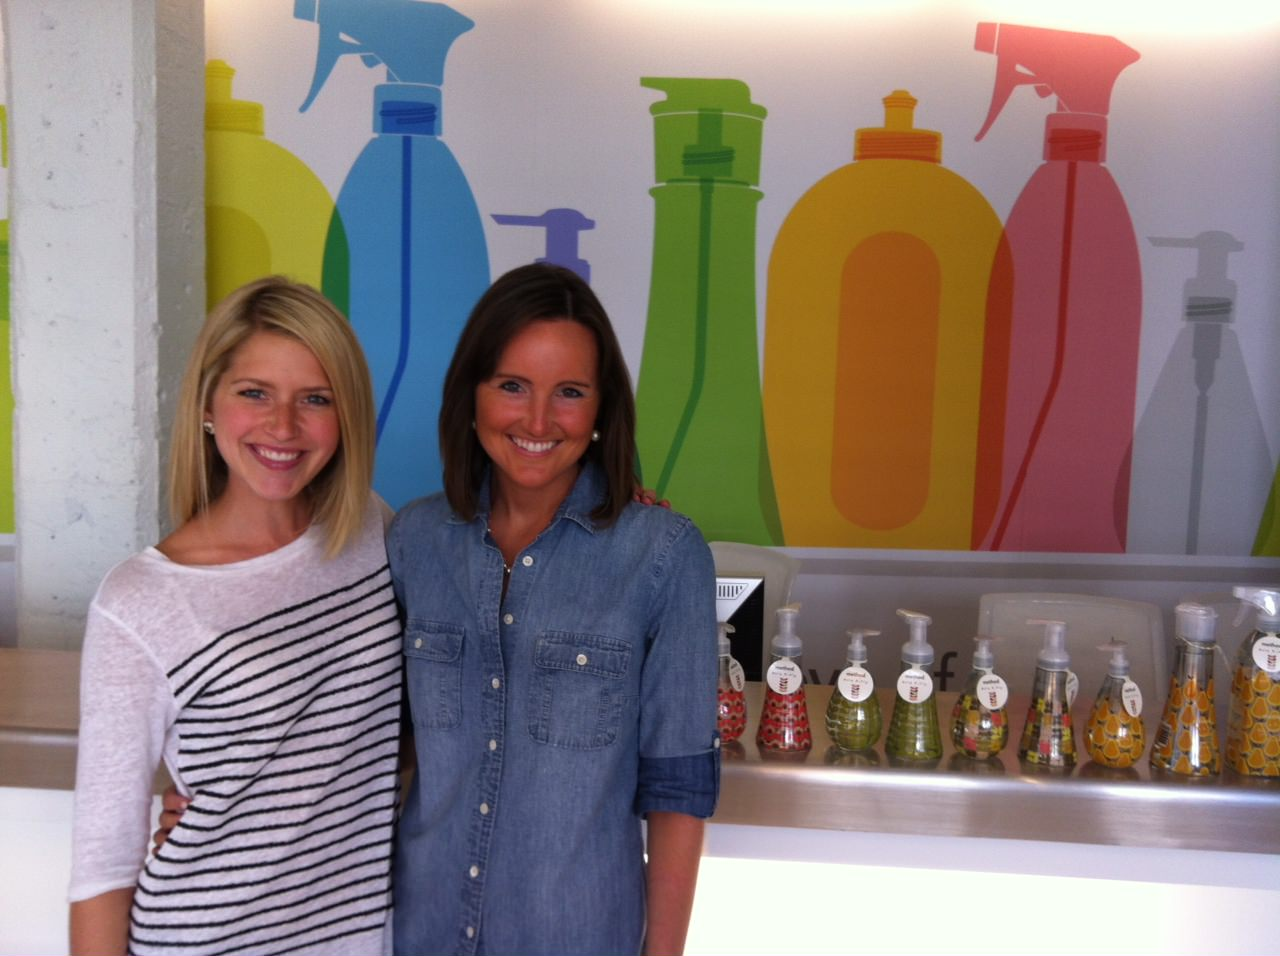 Molly Graves, Molly Heffinger, Heather Byrne, Heather Gilligan, Neat Method, Method, Method Cleaning Supplies, Start up, San Francisco, San Francisco office, Start up office